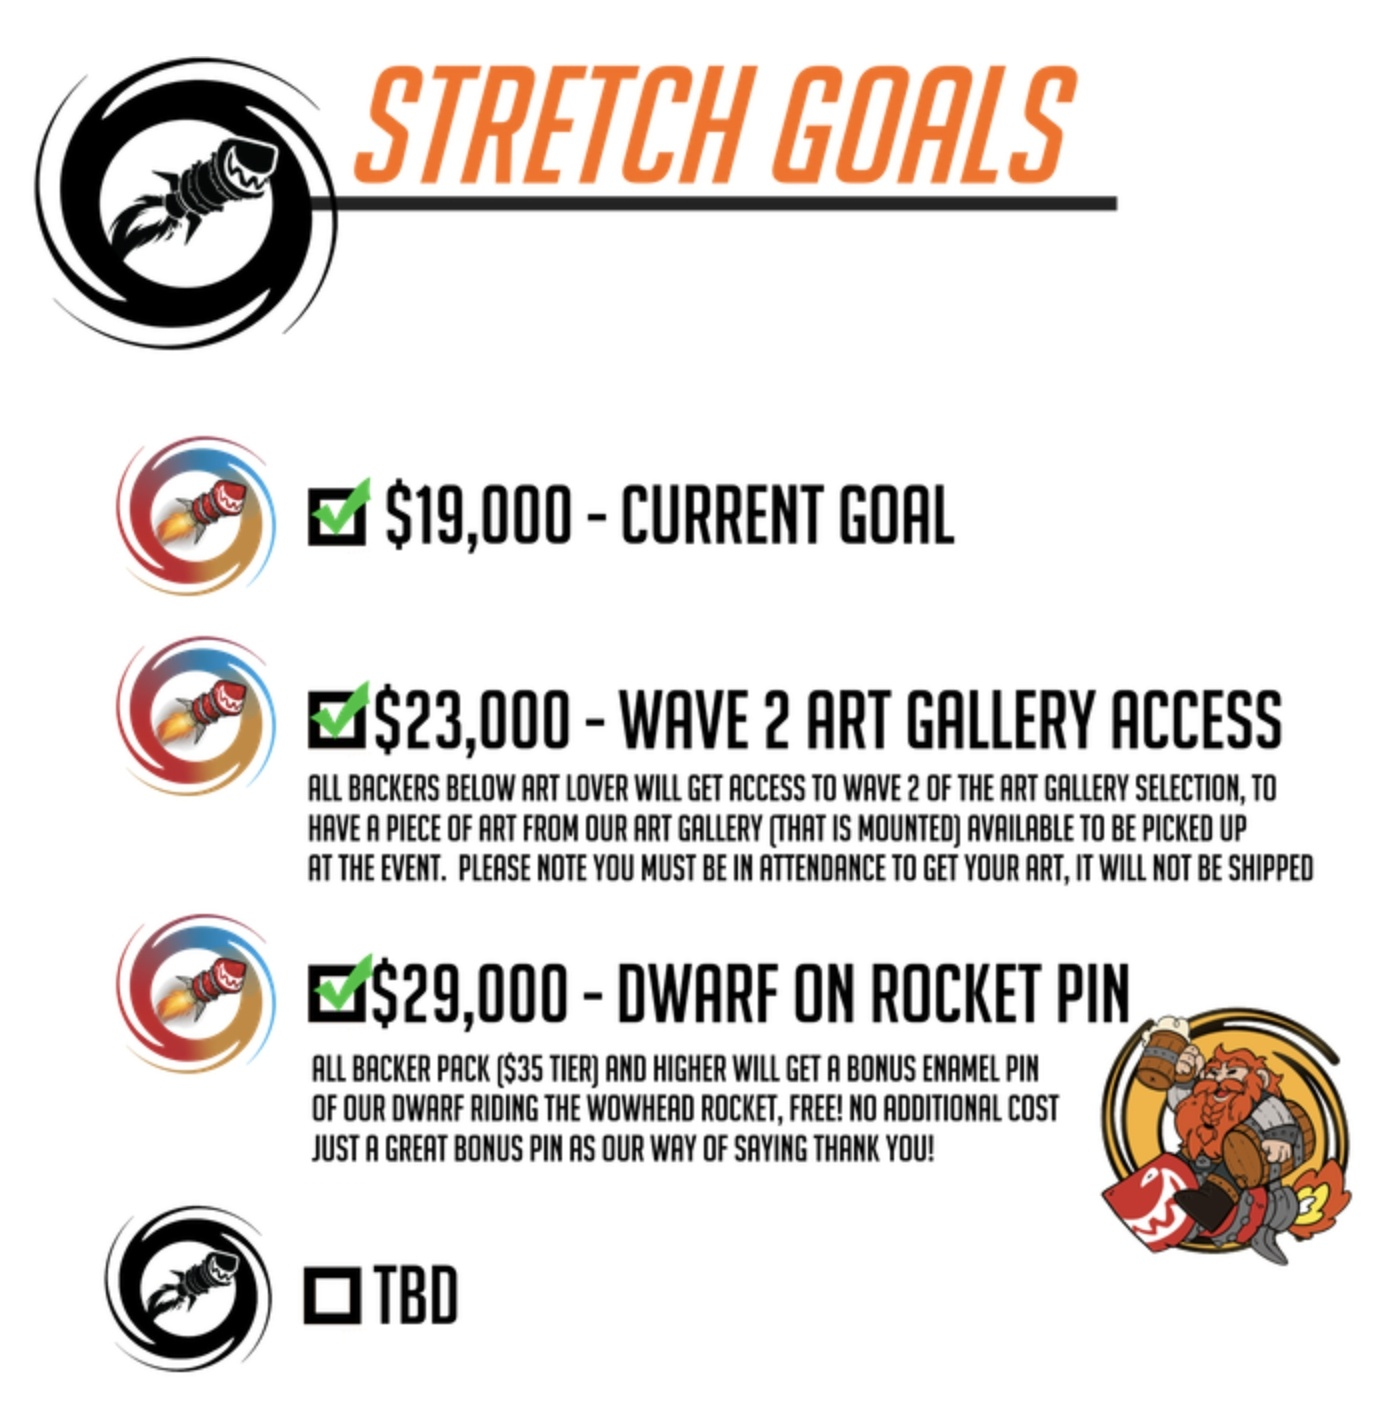 BlizzCon Party Update - Stretch Goals, New Collectible Pin, Call for  Artists - Wowhead News